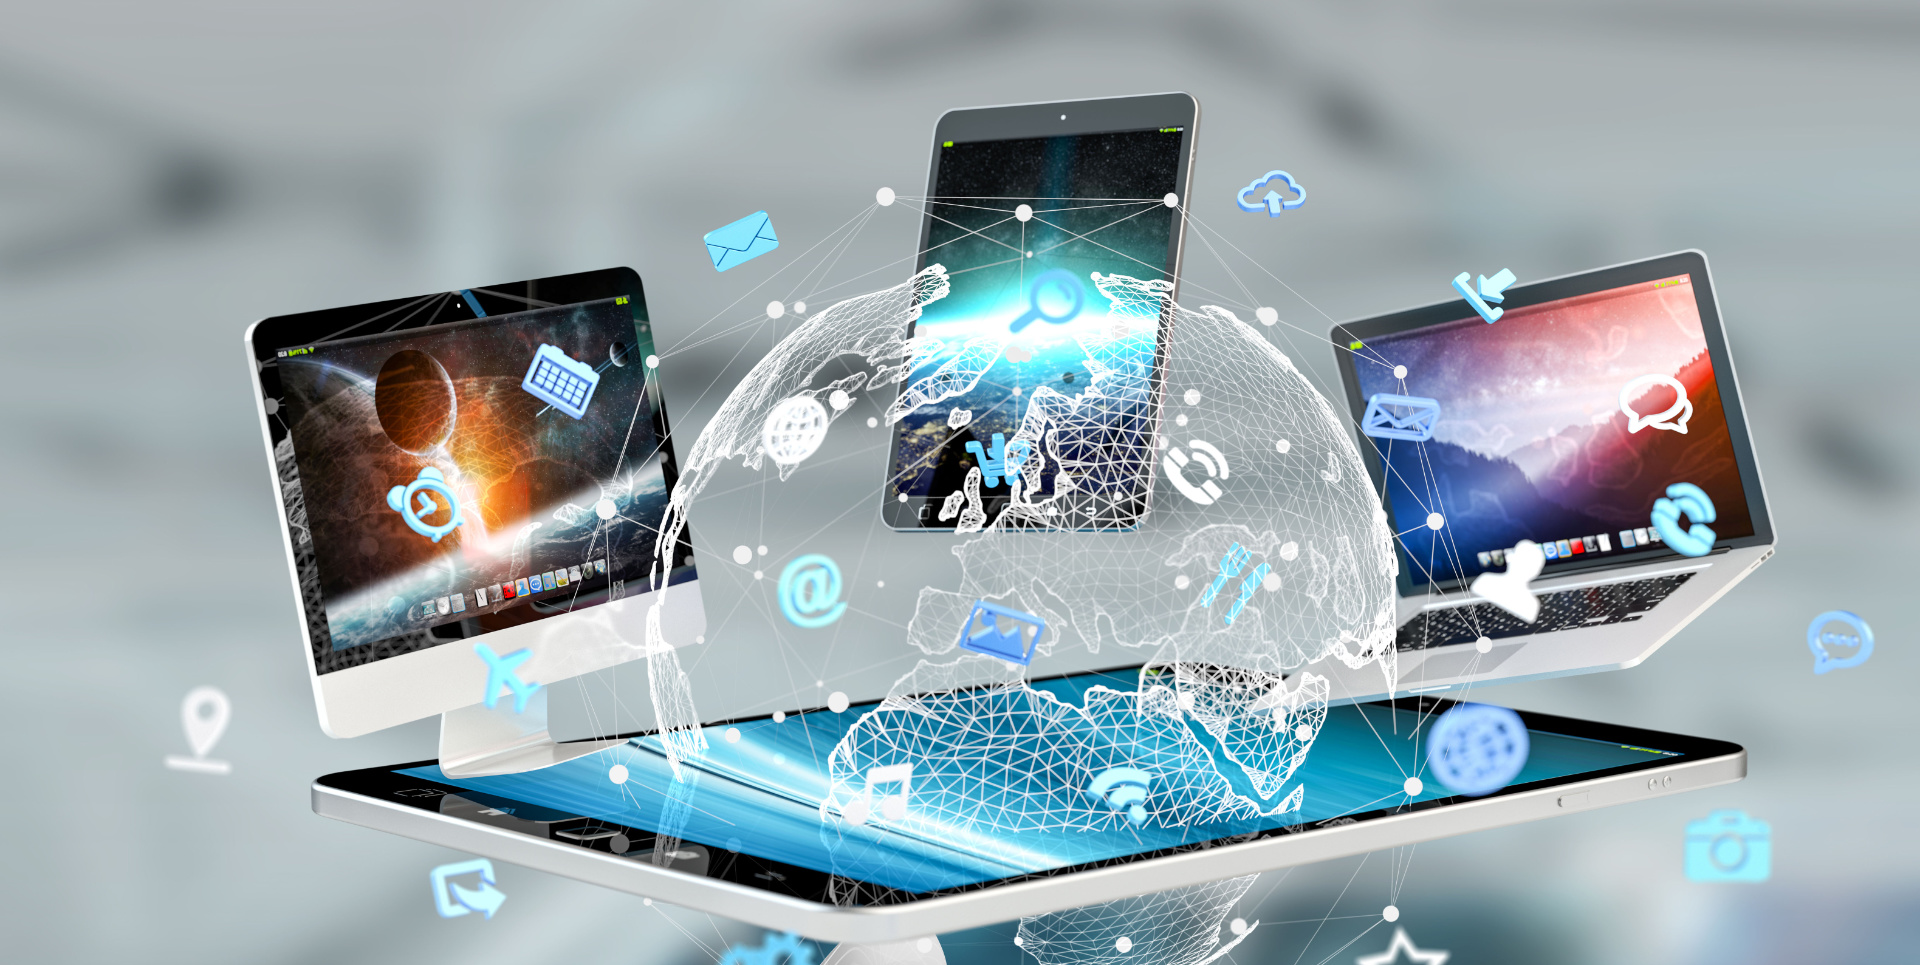 solution-client-ssds-background-1920